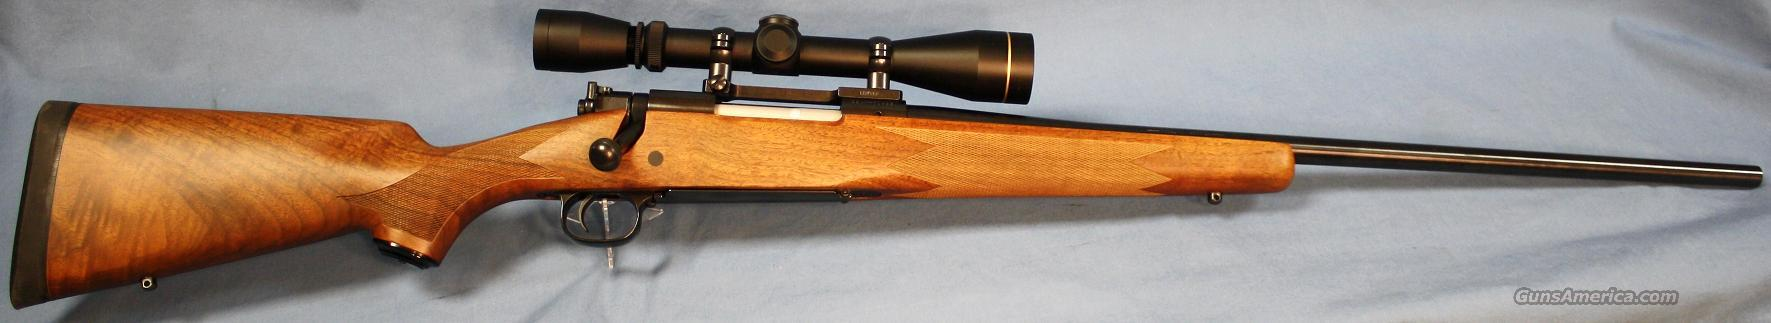 Winchester Model 70 Sporter Bolt Action Rifle .30-06 with Leupold Vari-X II Scope  Guns > Rifles > Winchester Rifles - Modern Bolt/Auto/Single > Model 70 > Post-64